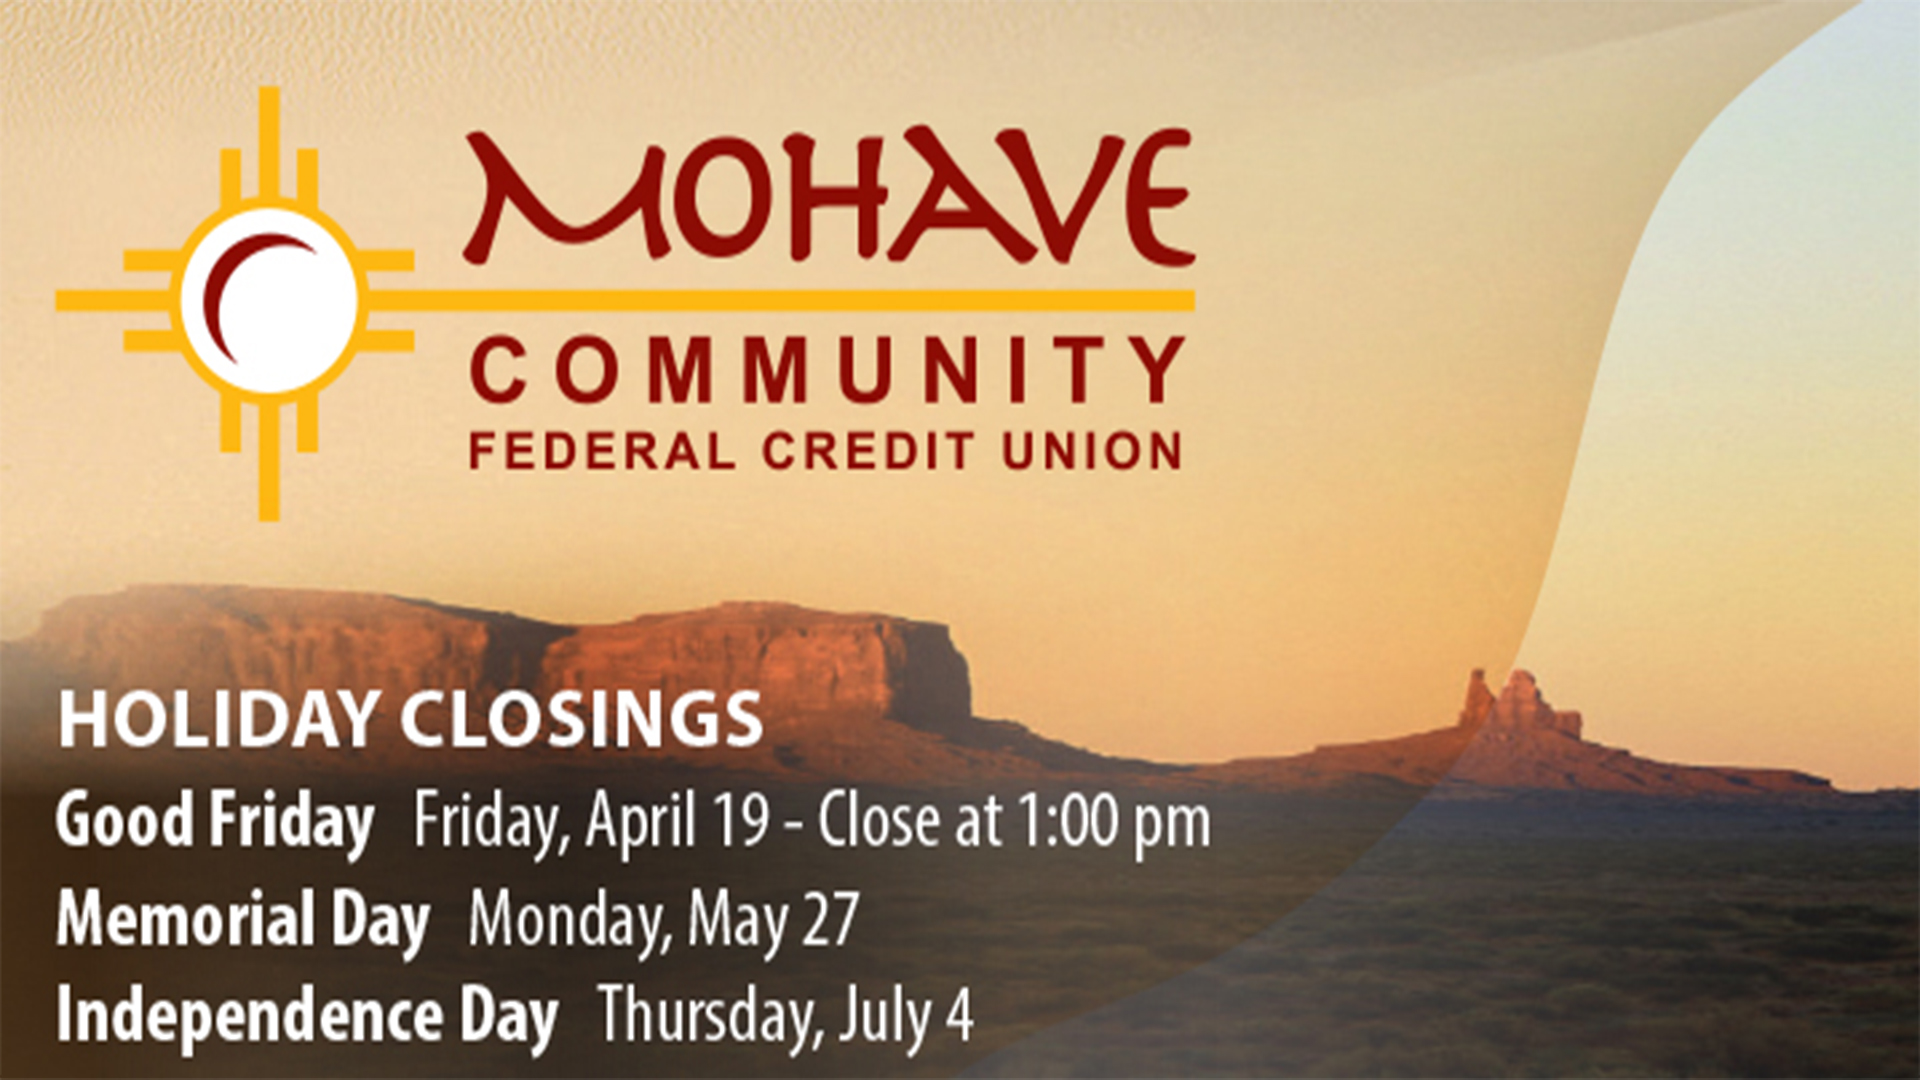 Holiday Closings. Contact Mohave Community Federal Credit Union for a list of closed dates at 928-753-8000.